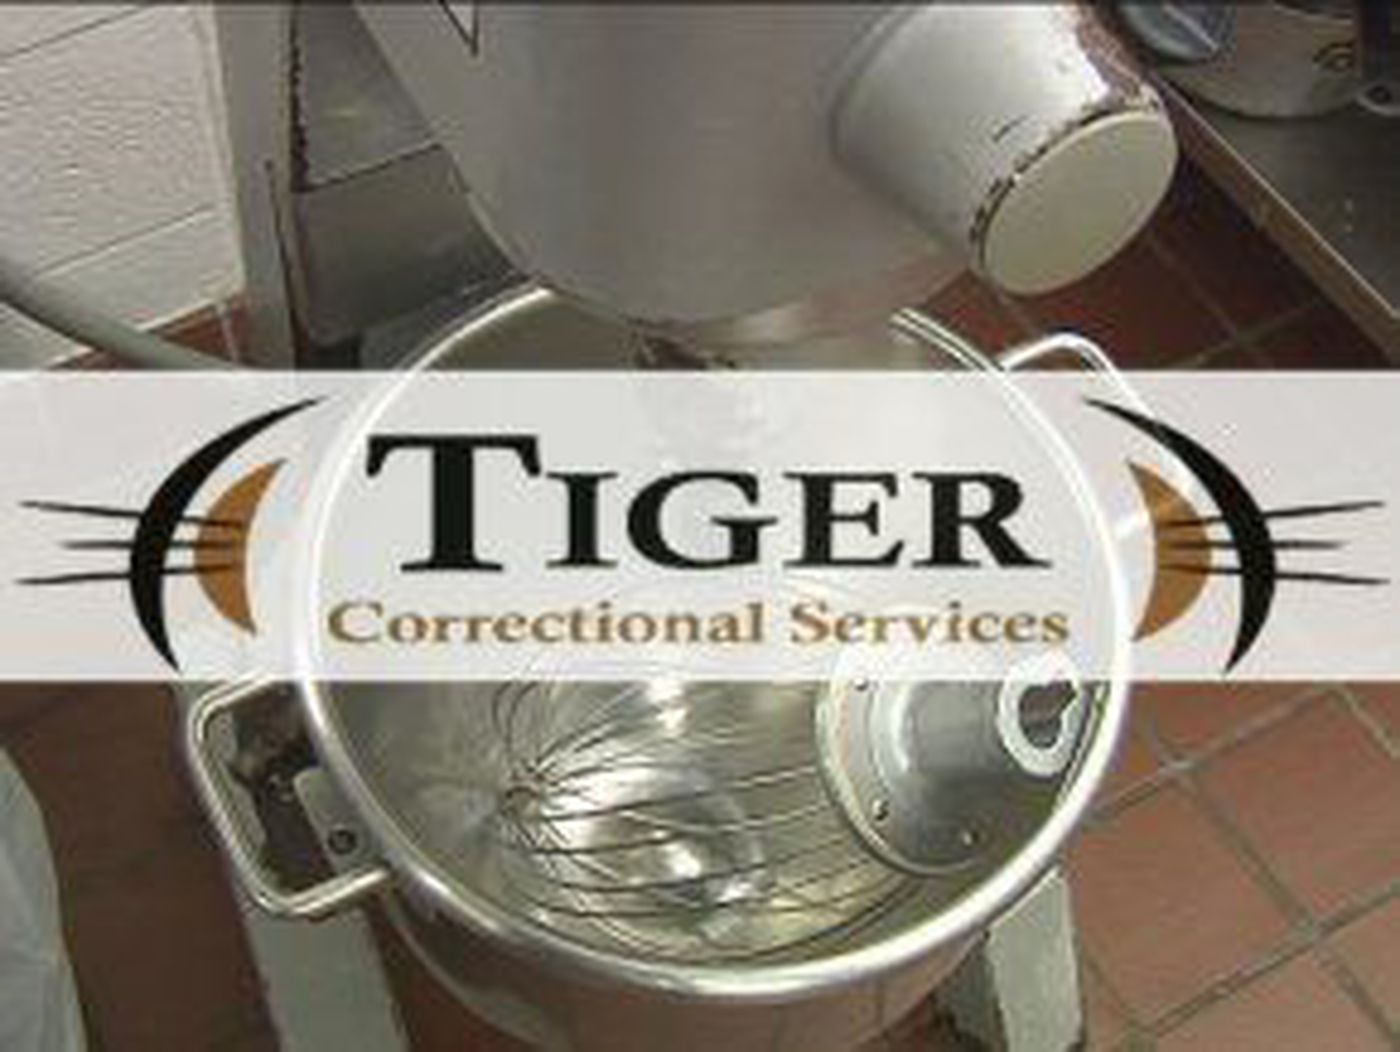 Craighead County Jail Cuts Back by Using Contract Company